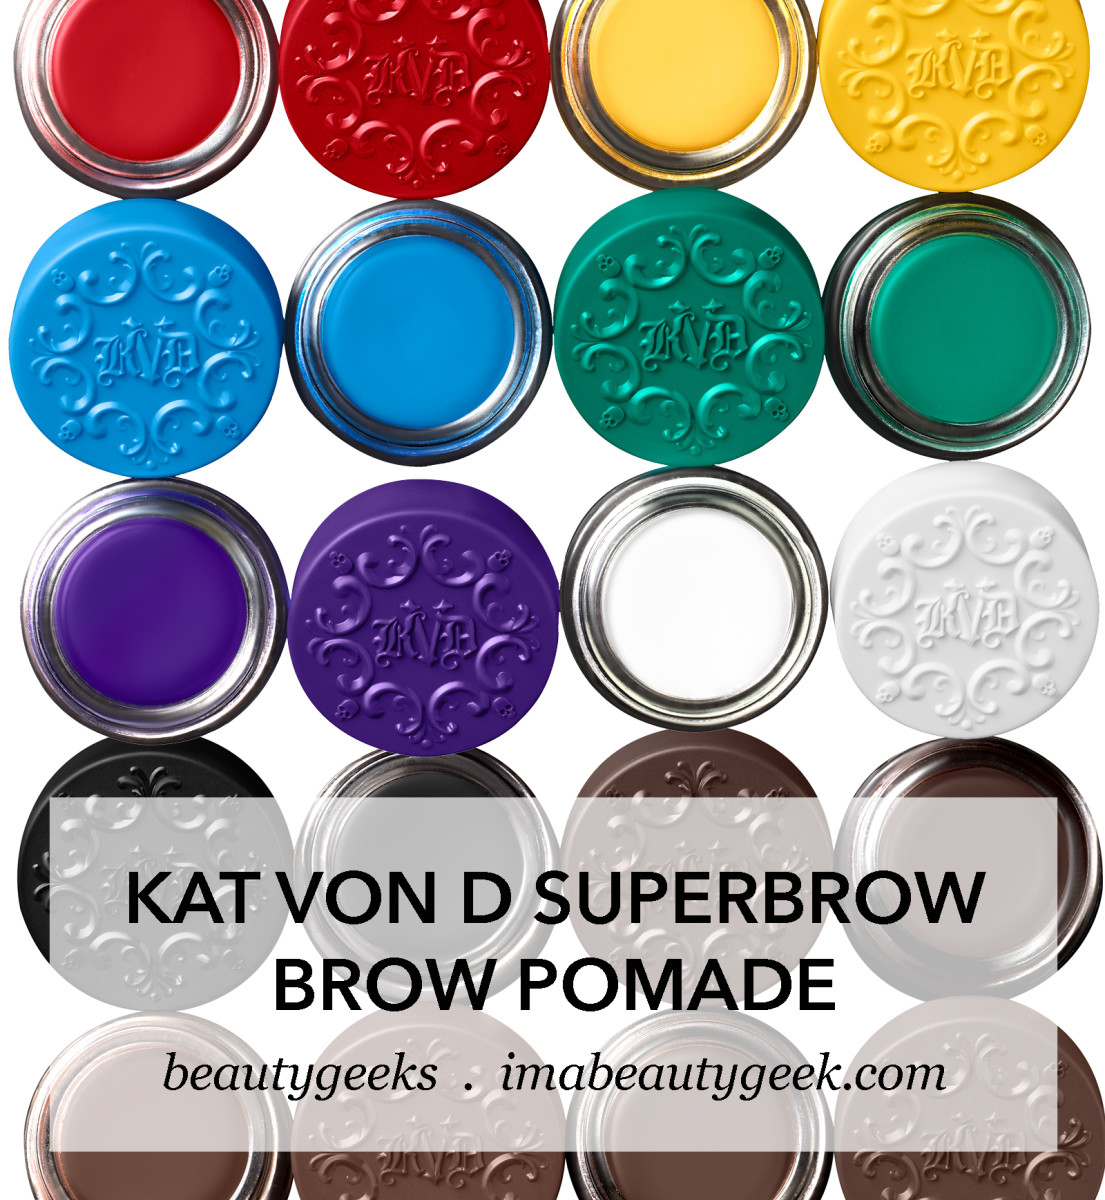 Kat Von D Superbrow Brow Pomade-BEAUTYGEEKS